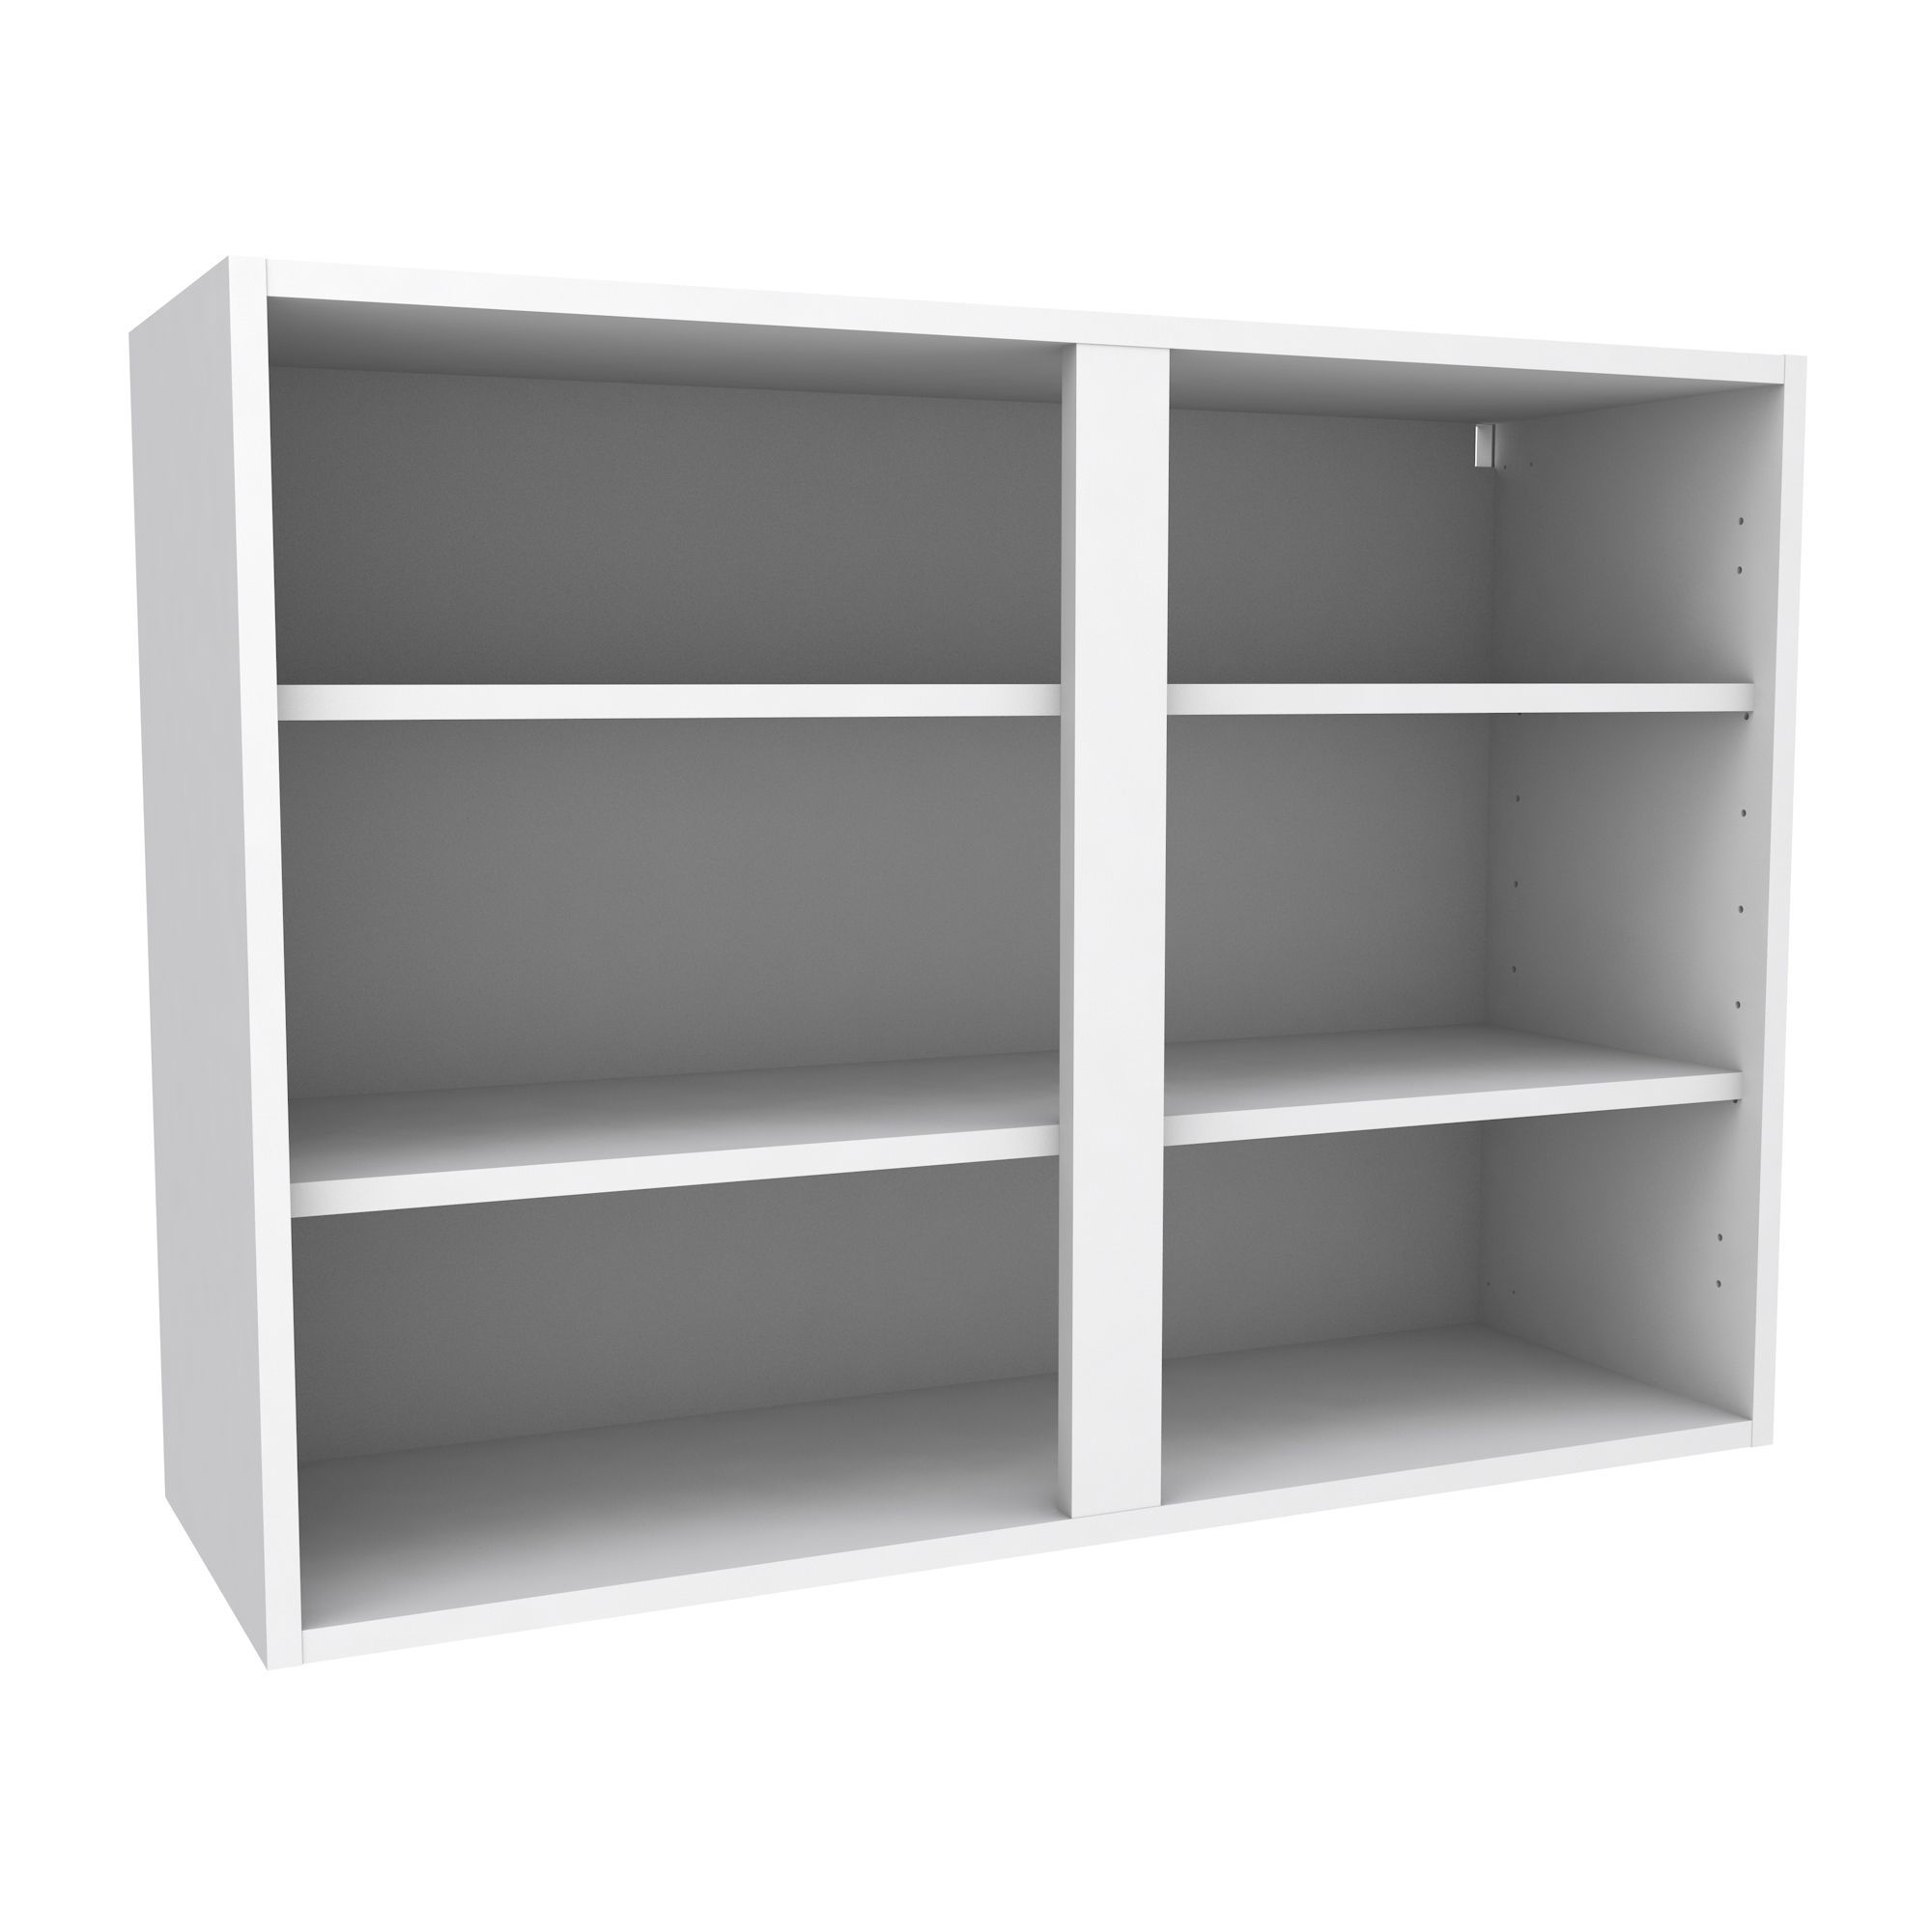 sunstonemetalproducts w com wall shelf item shelves double steel cabinet full height stainless door four no cabinets